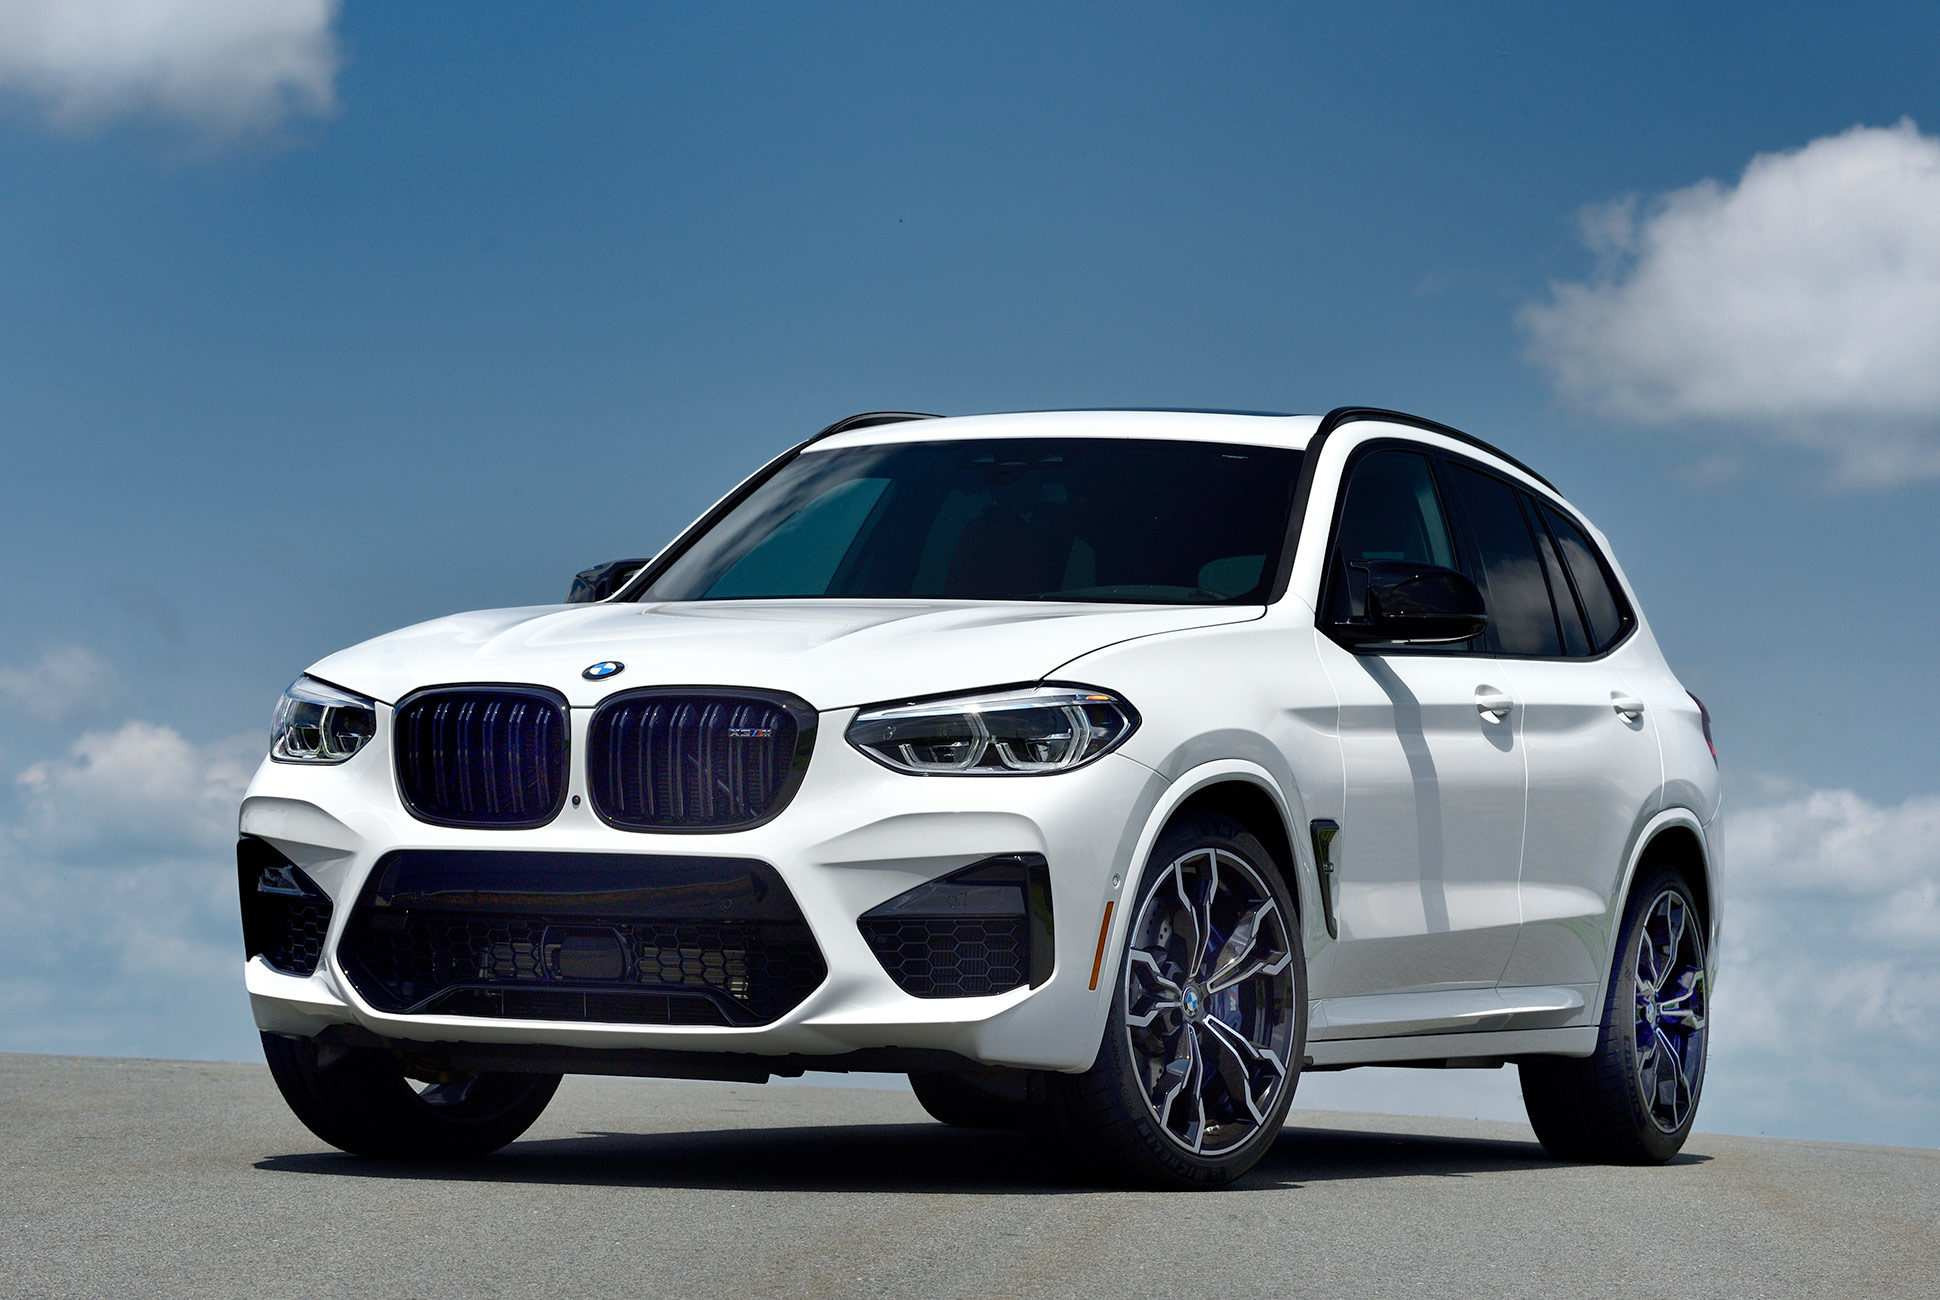 84 Best Review 2020 Bmw X3 Release Date Performance by 2020 Bmw X3 Release Date